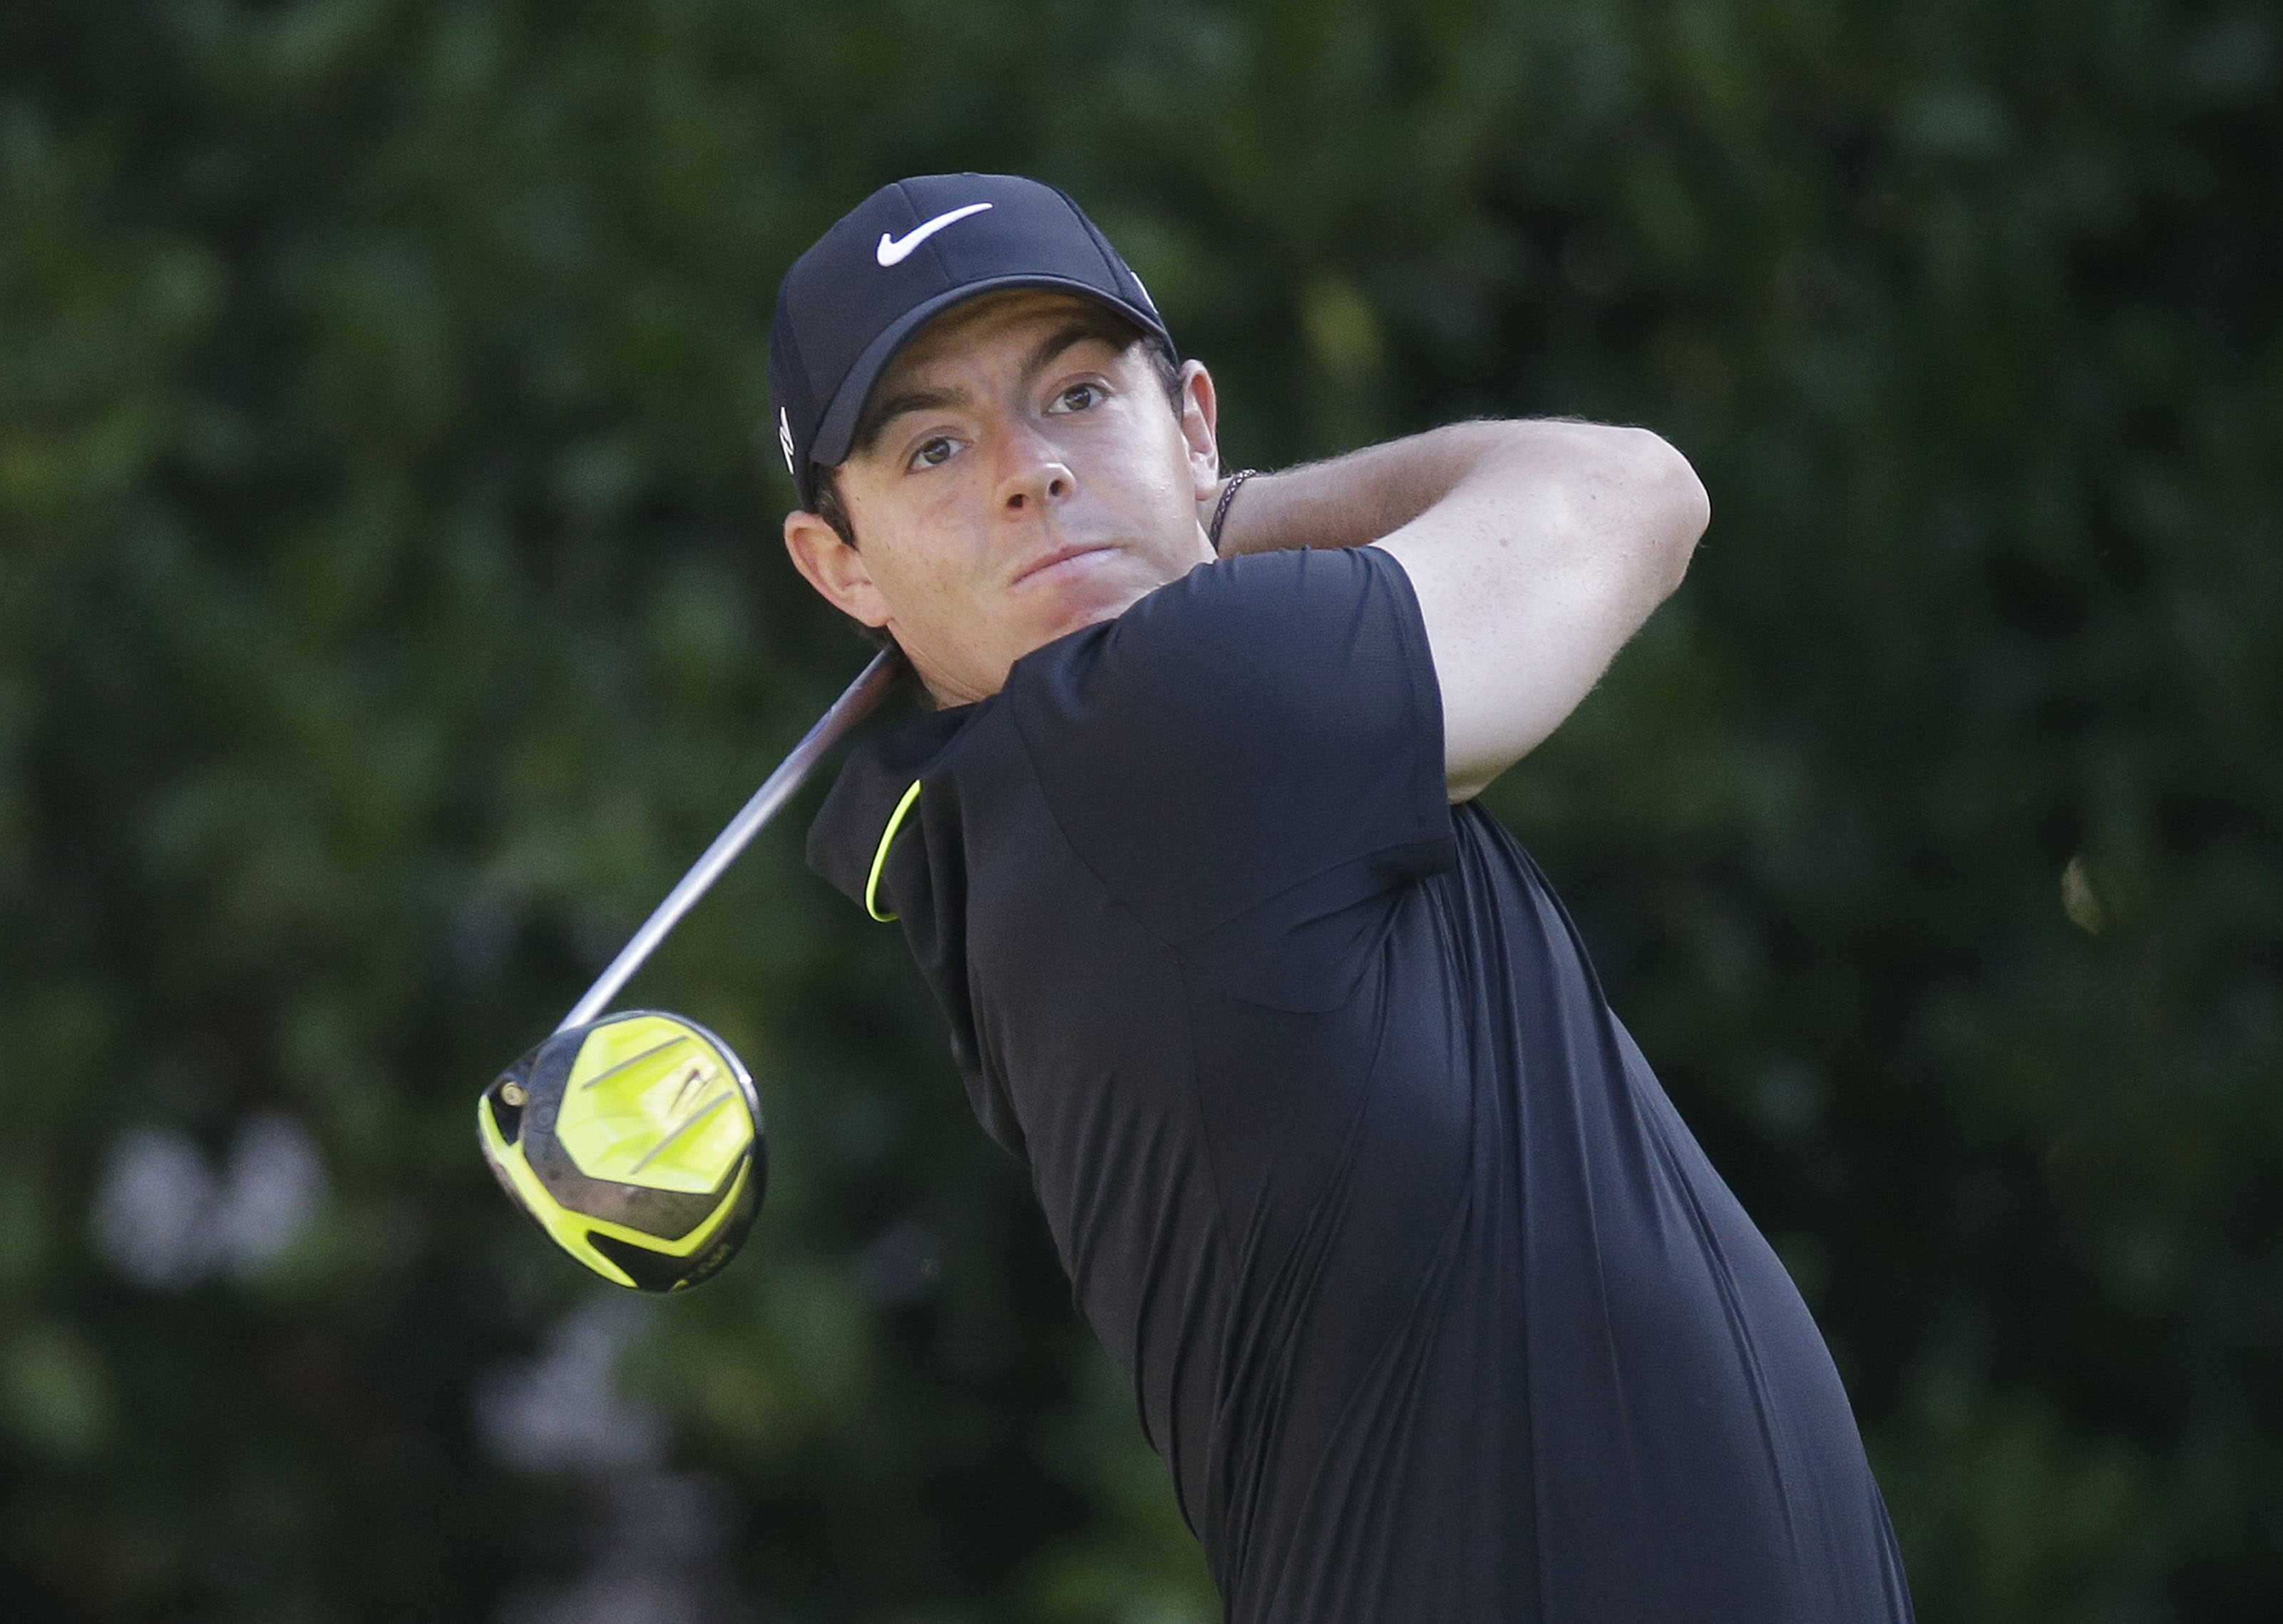 Rory McIlroy, of Northern Ireland, hits from the 10th tee during the first round of The Players Championship golf tournament Thursday, May 7, 2015, in Ponte Vedra Beach, Fla., Fla. (AP Photo/John